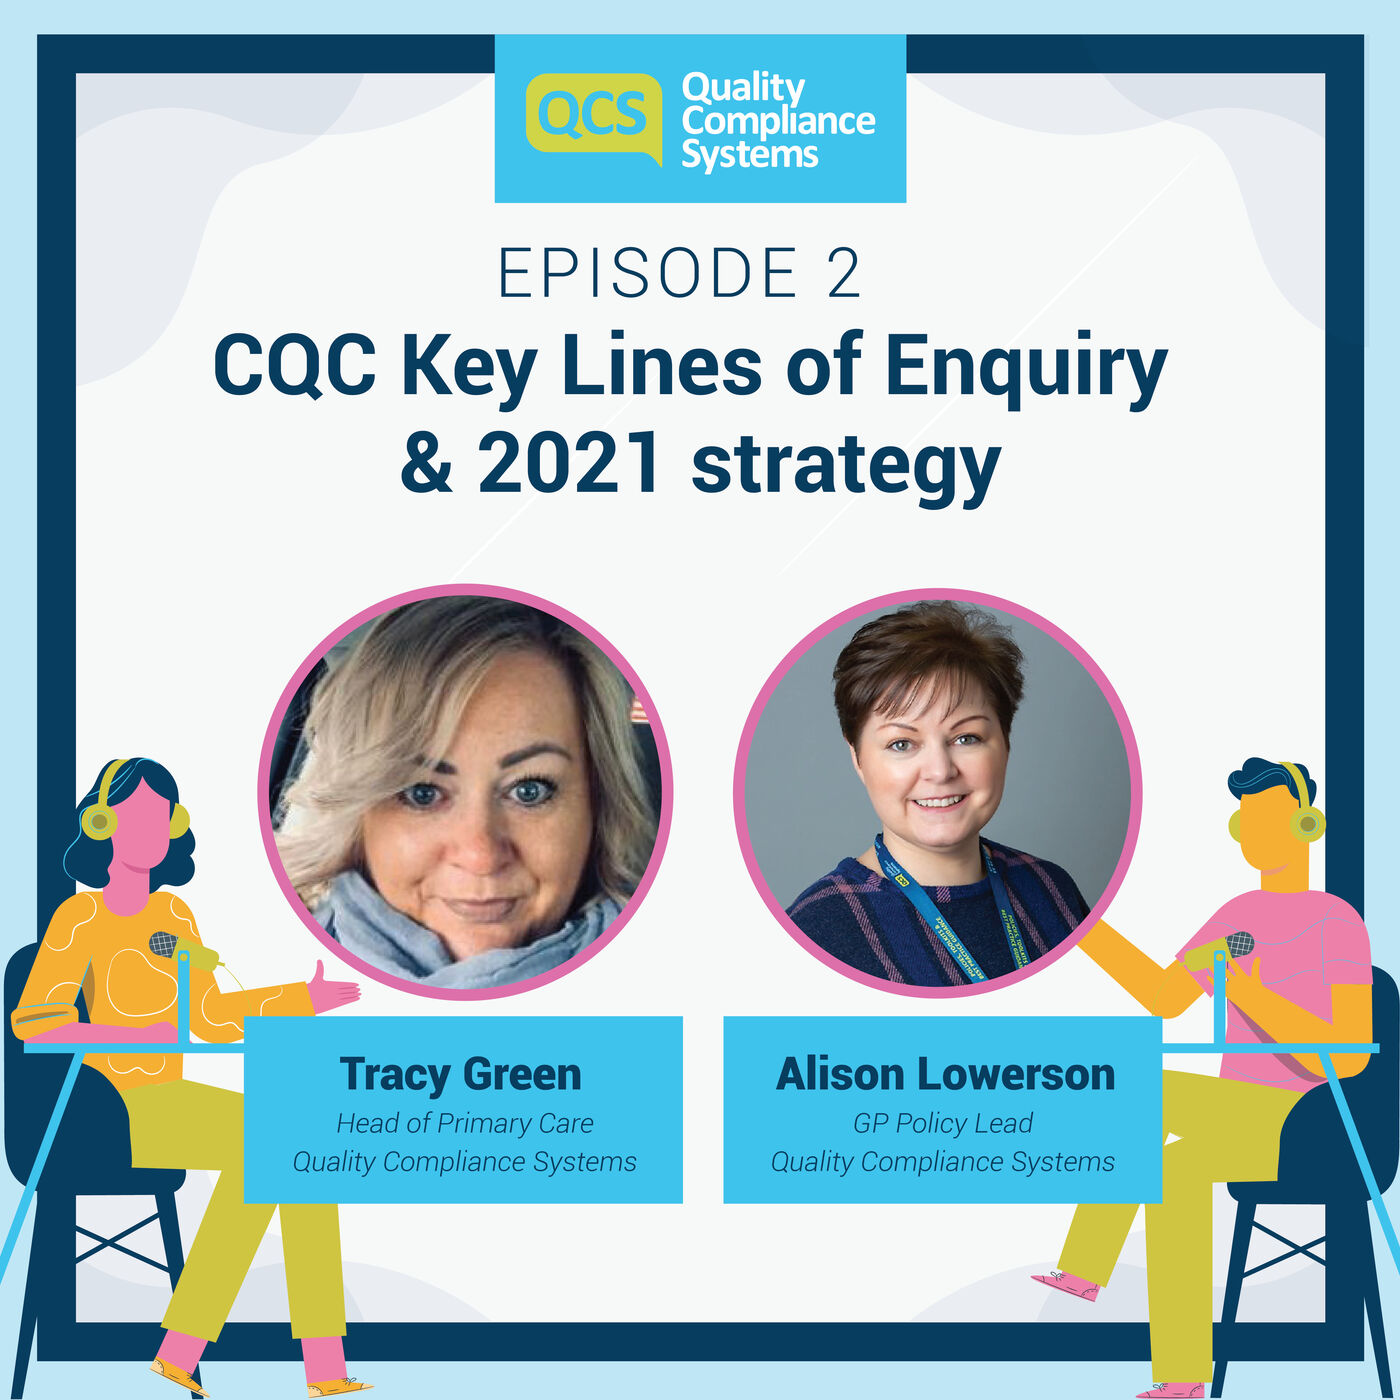 CQC - Key Lines of Enquiry and 2021 strategy